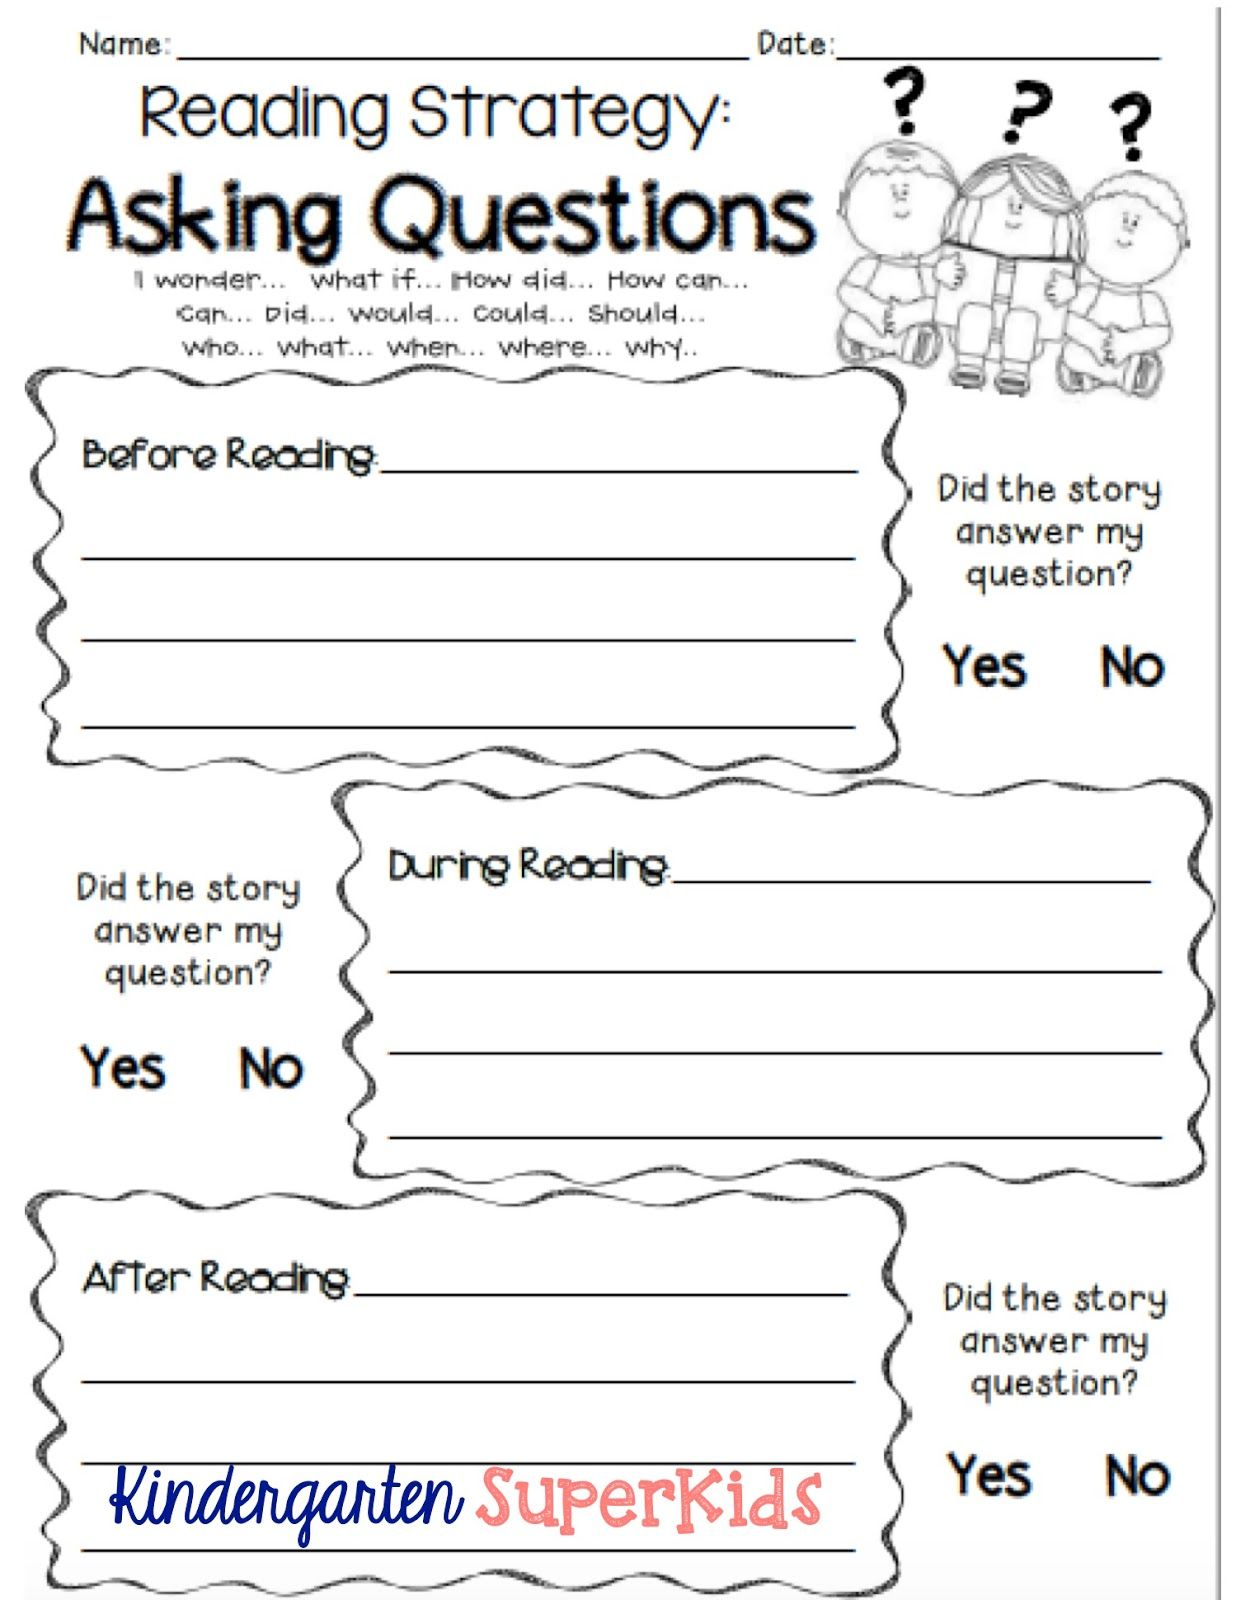 Asking Questions Reading Strategy Free Student Recording Sheet Kindergarten 1st Grade 2nd Grad Reading Strategies This Or That Questions Reading Worksheets [ 1600 x 1236 Pixel ]